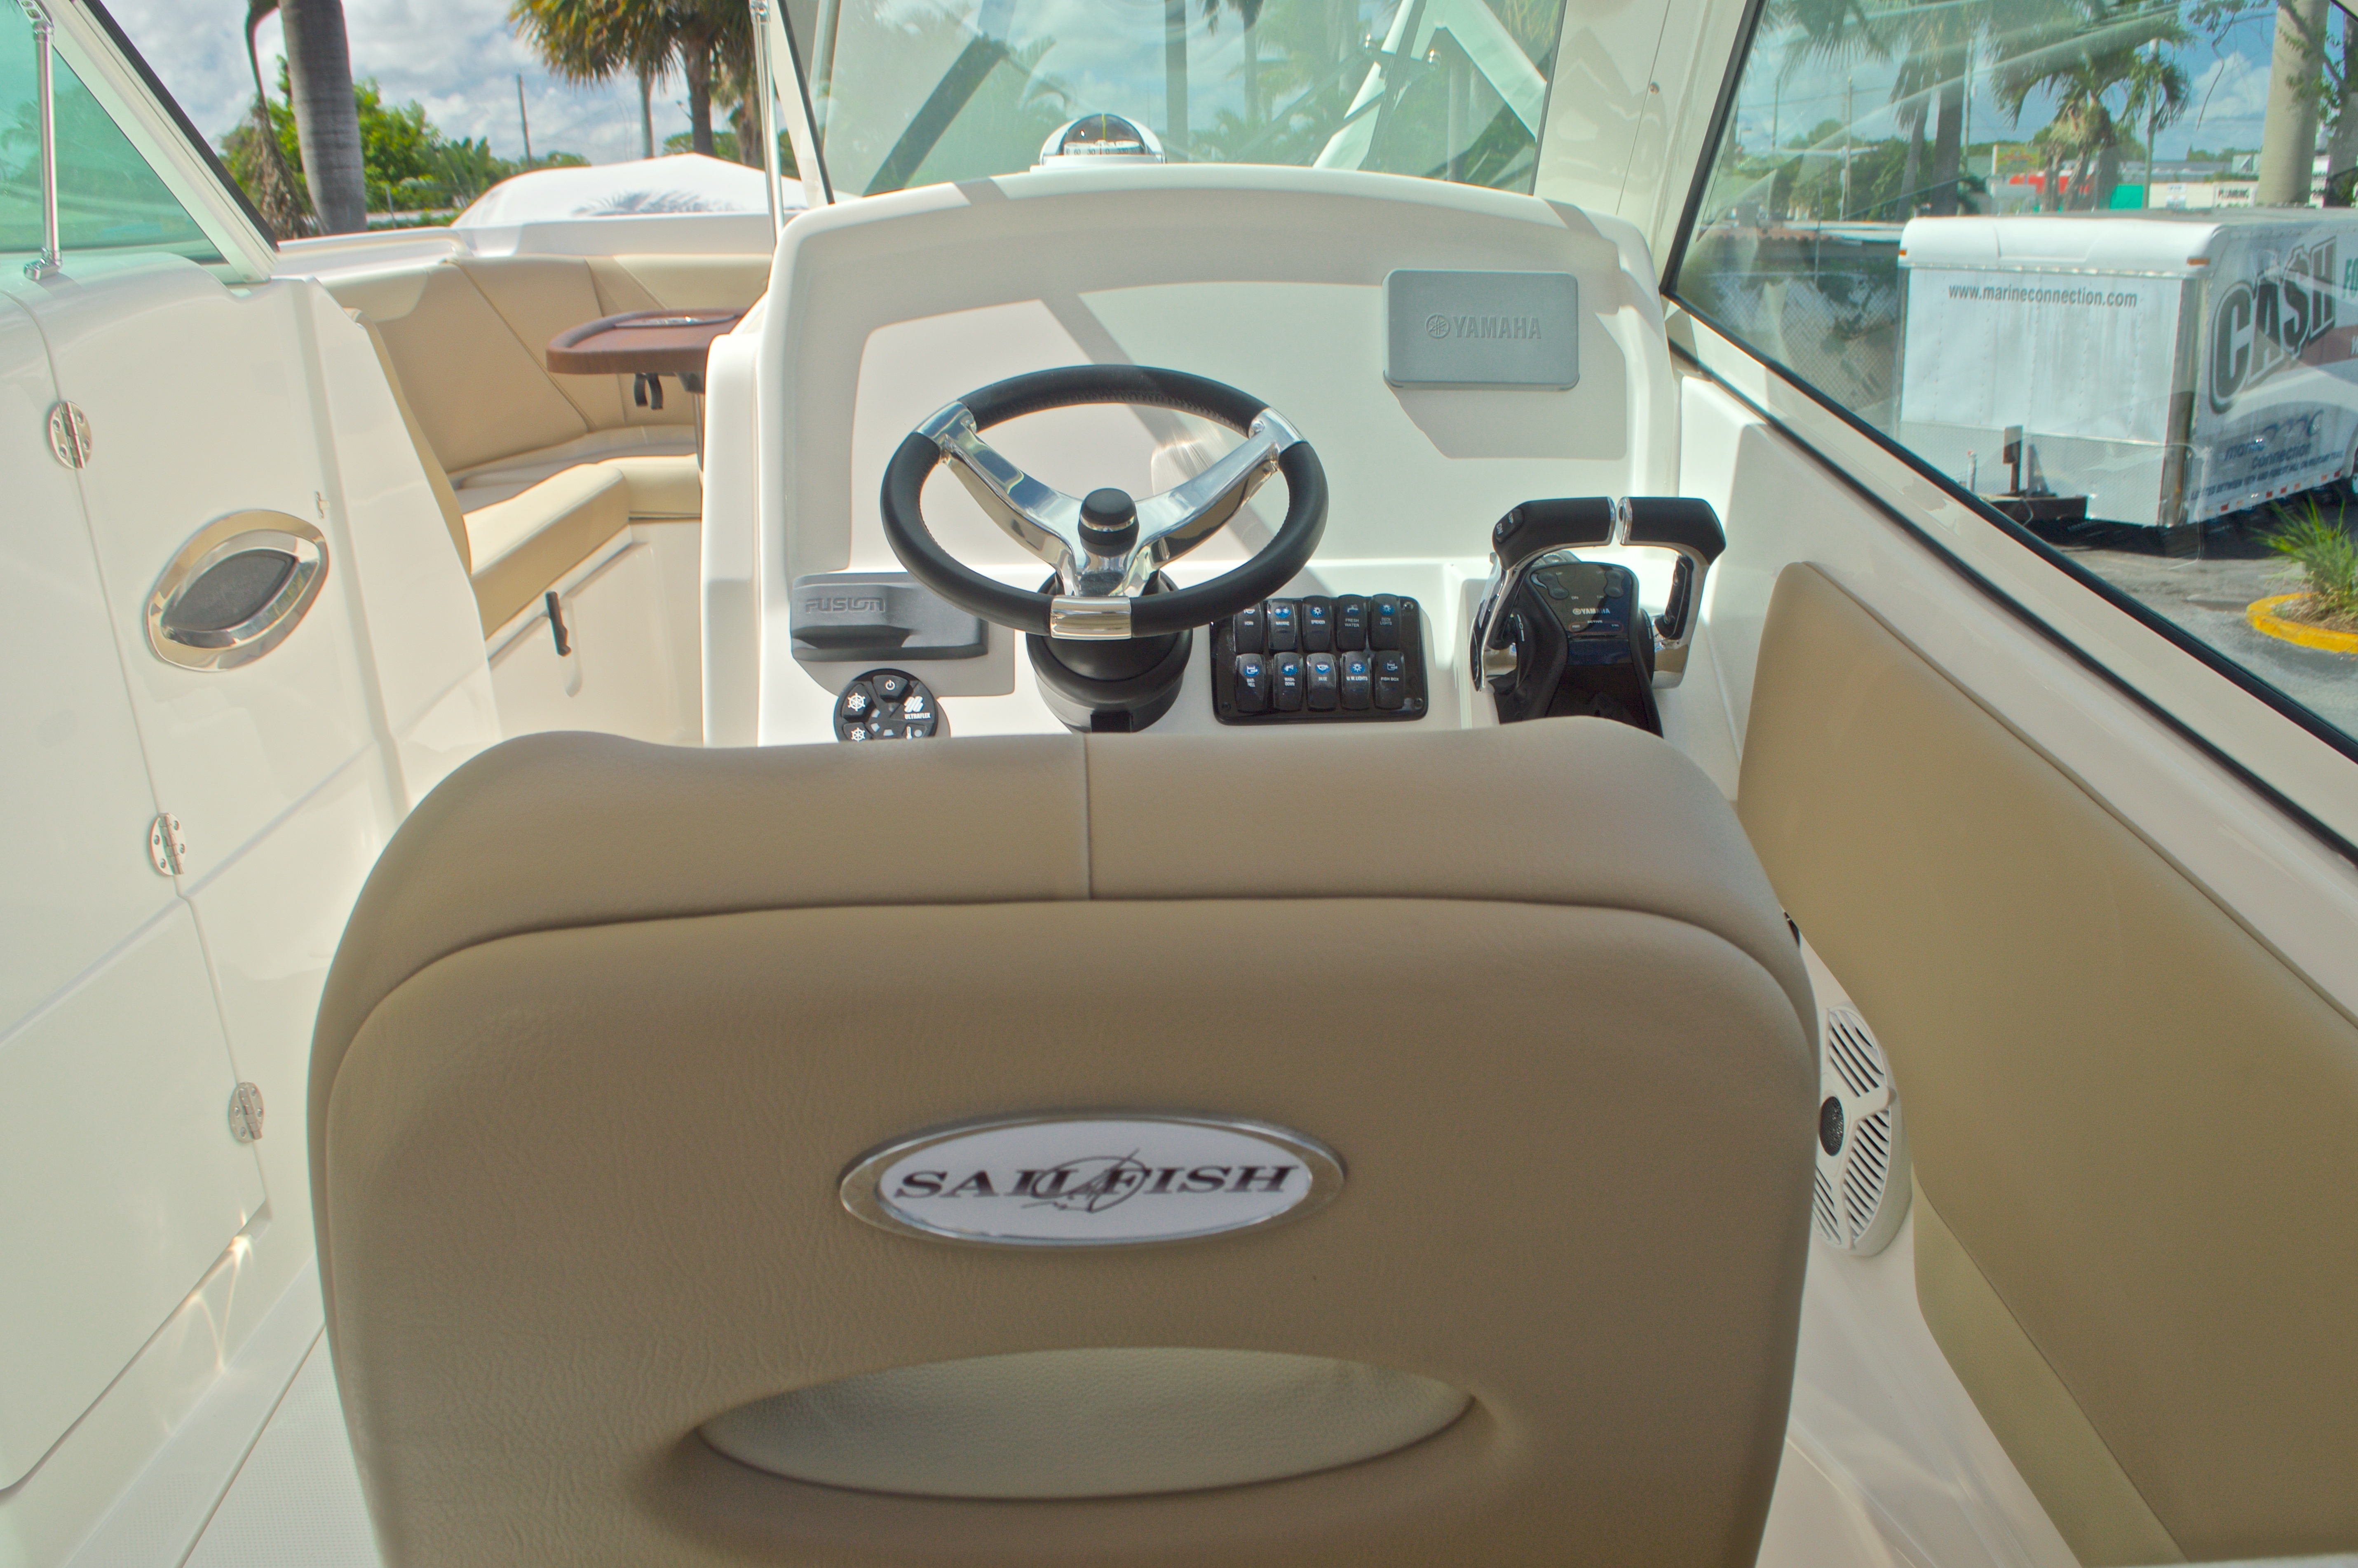 Thumbnail 39 for New 2017 Sailfish 275 Dual Console boat for sale in Vero Beach, FL